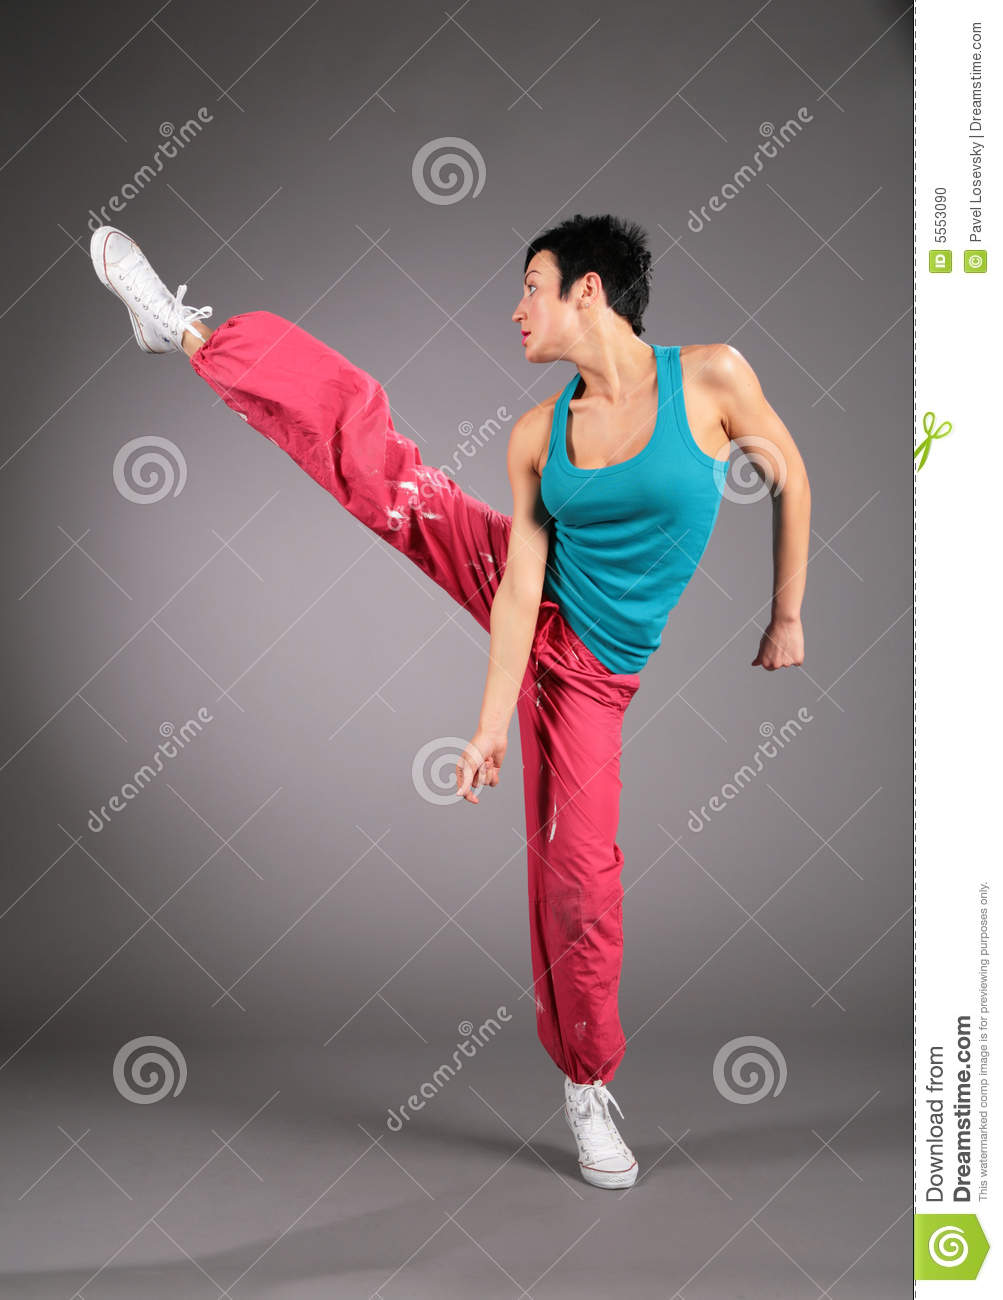 Dance Hip Hop Girl Stock Photo Image Of Adult, Casual -2191